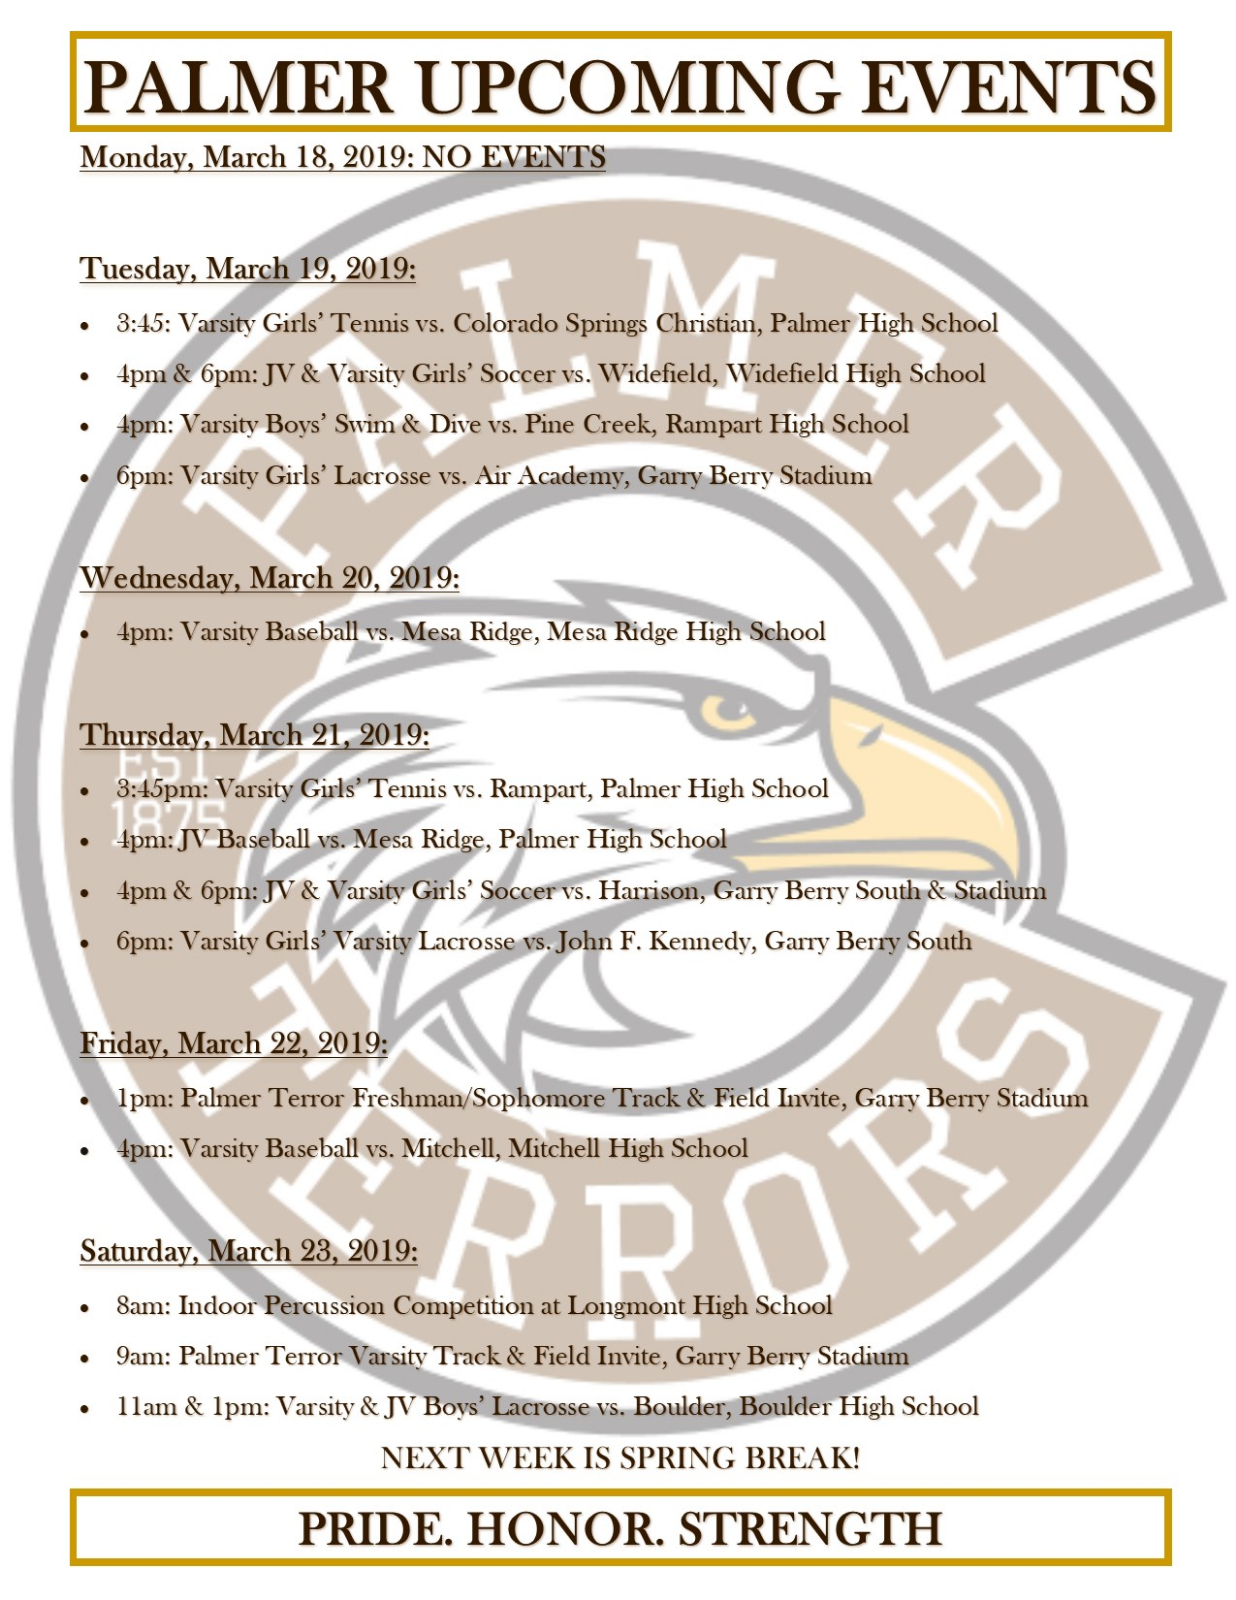 Palmer Events for the Week of March 18, 2019